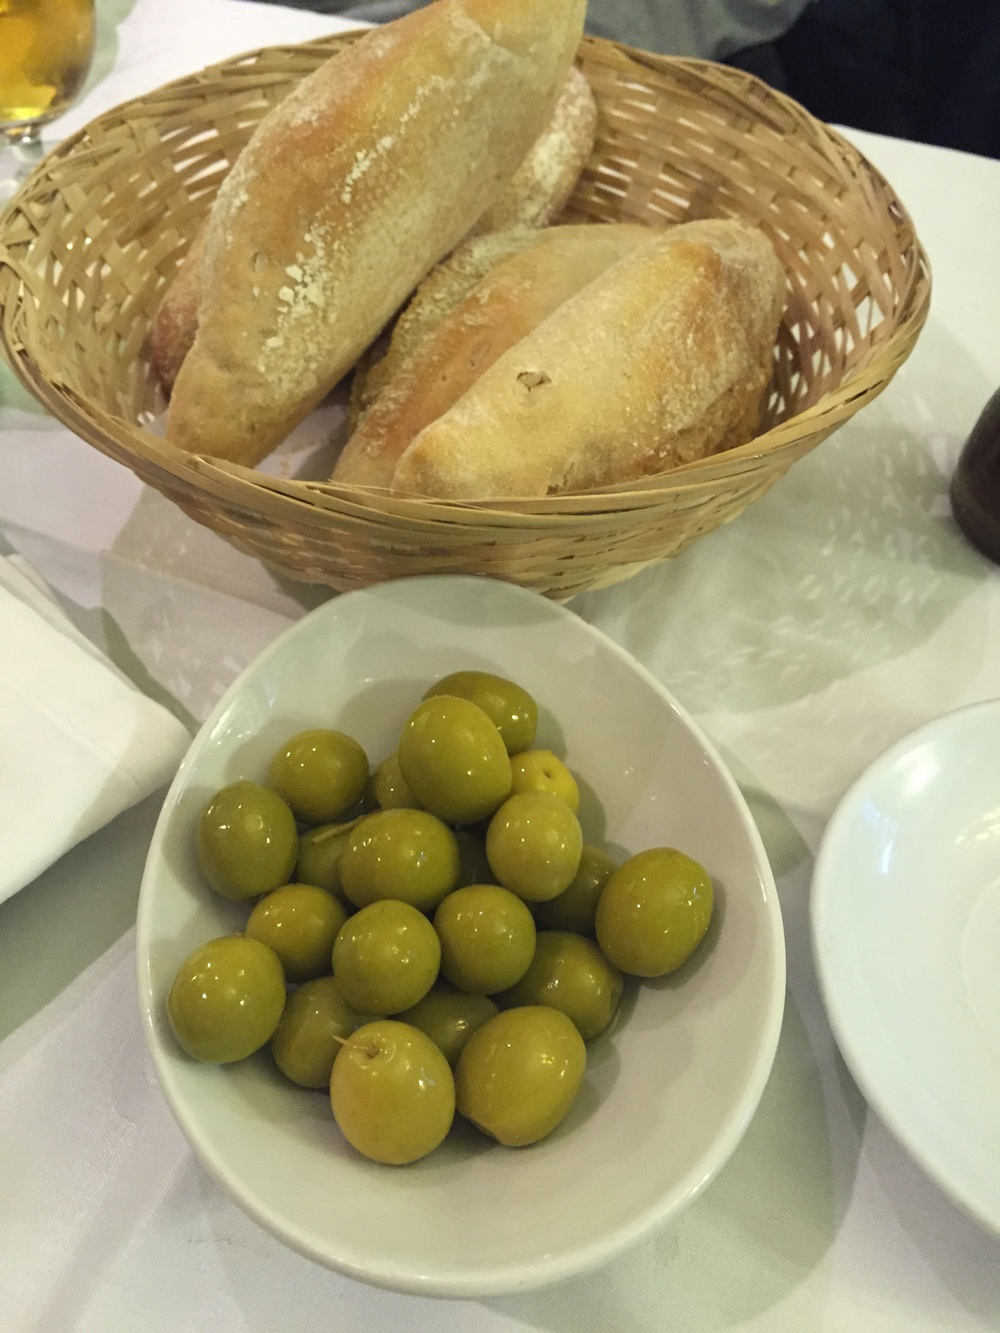 Getting complimentary olives. Oh God bless the olives. I always eat more than half of the olives. I love the olives here because they seem to be soaked in only salt and water and they're not heavily acidic.